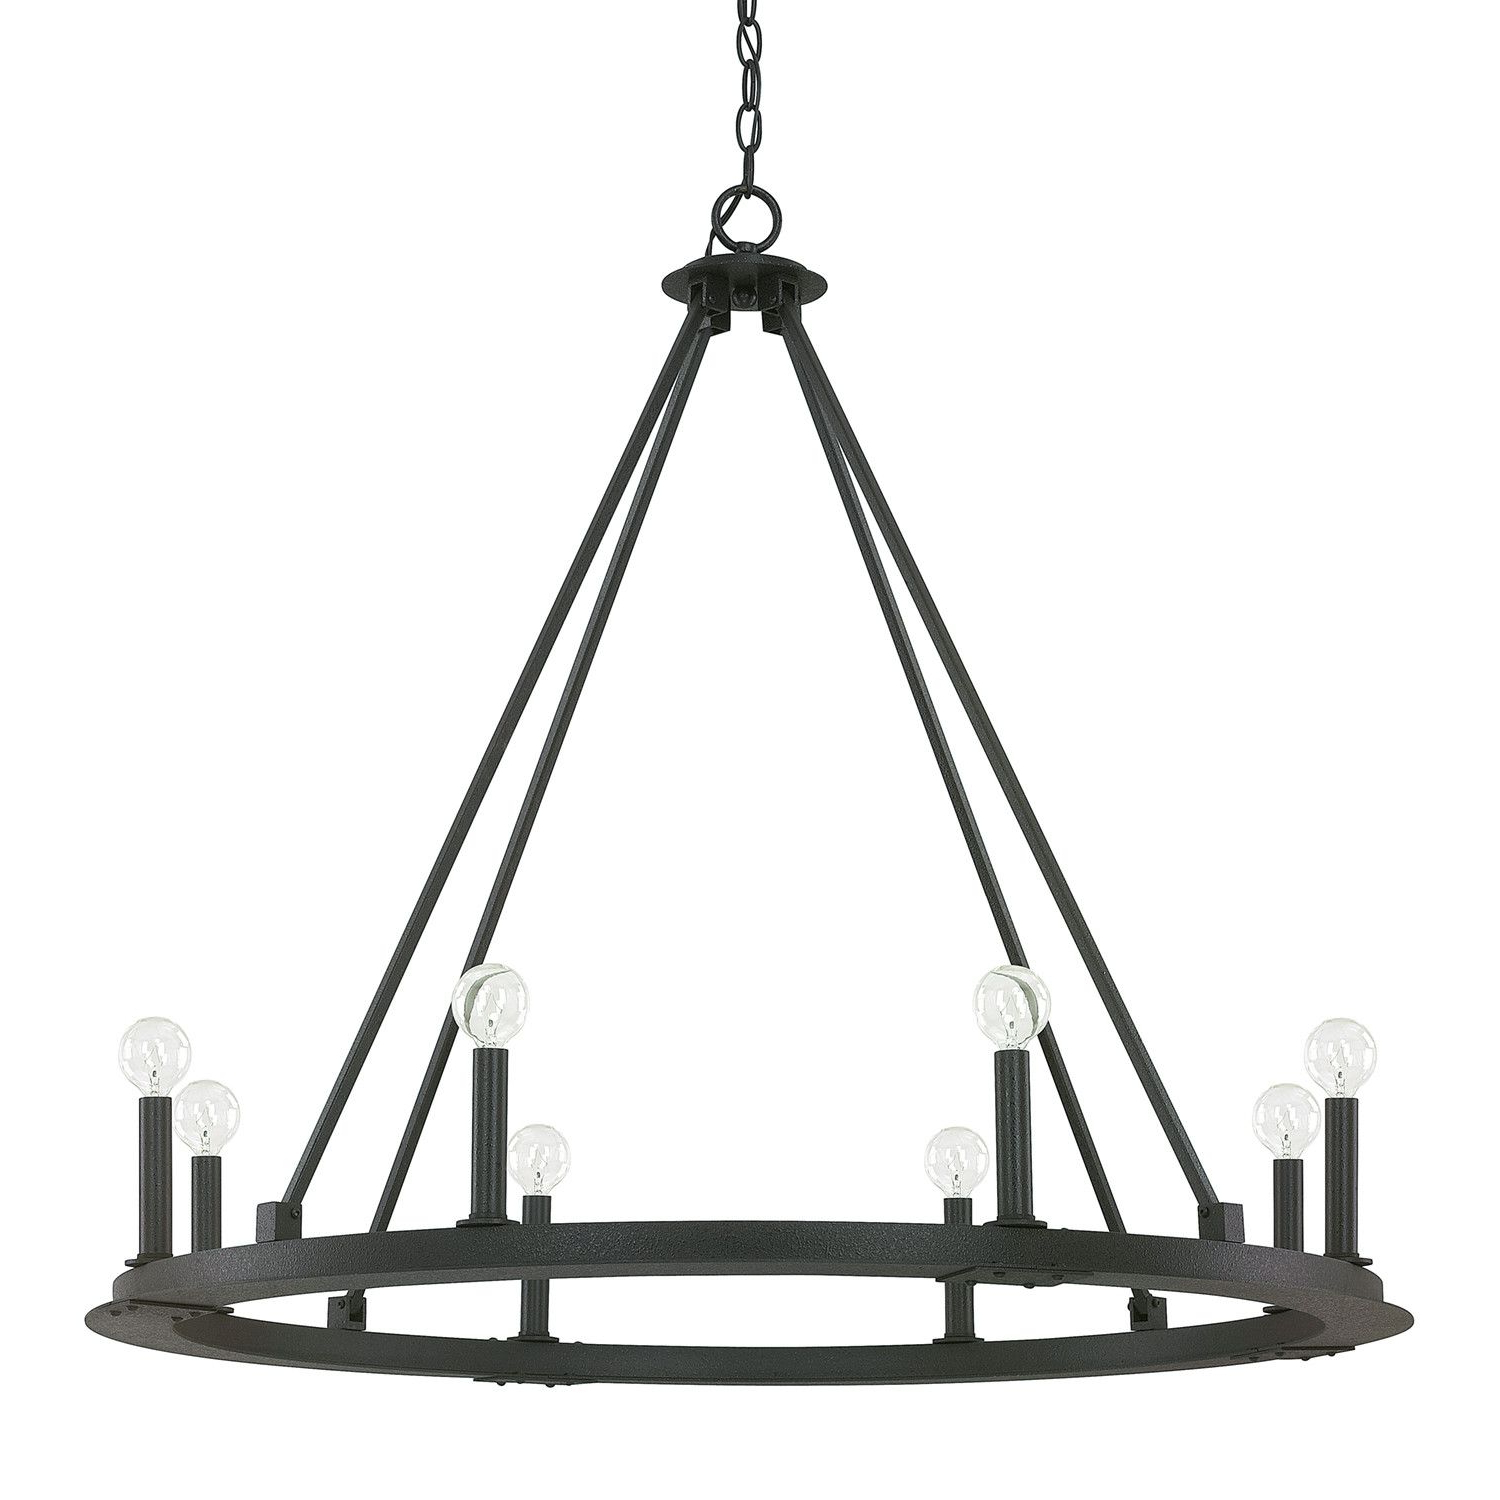 Lighting With Regard To Trendy Shayla 12 Light Wagon Wheel Chandeliers (View 6 of 20)